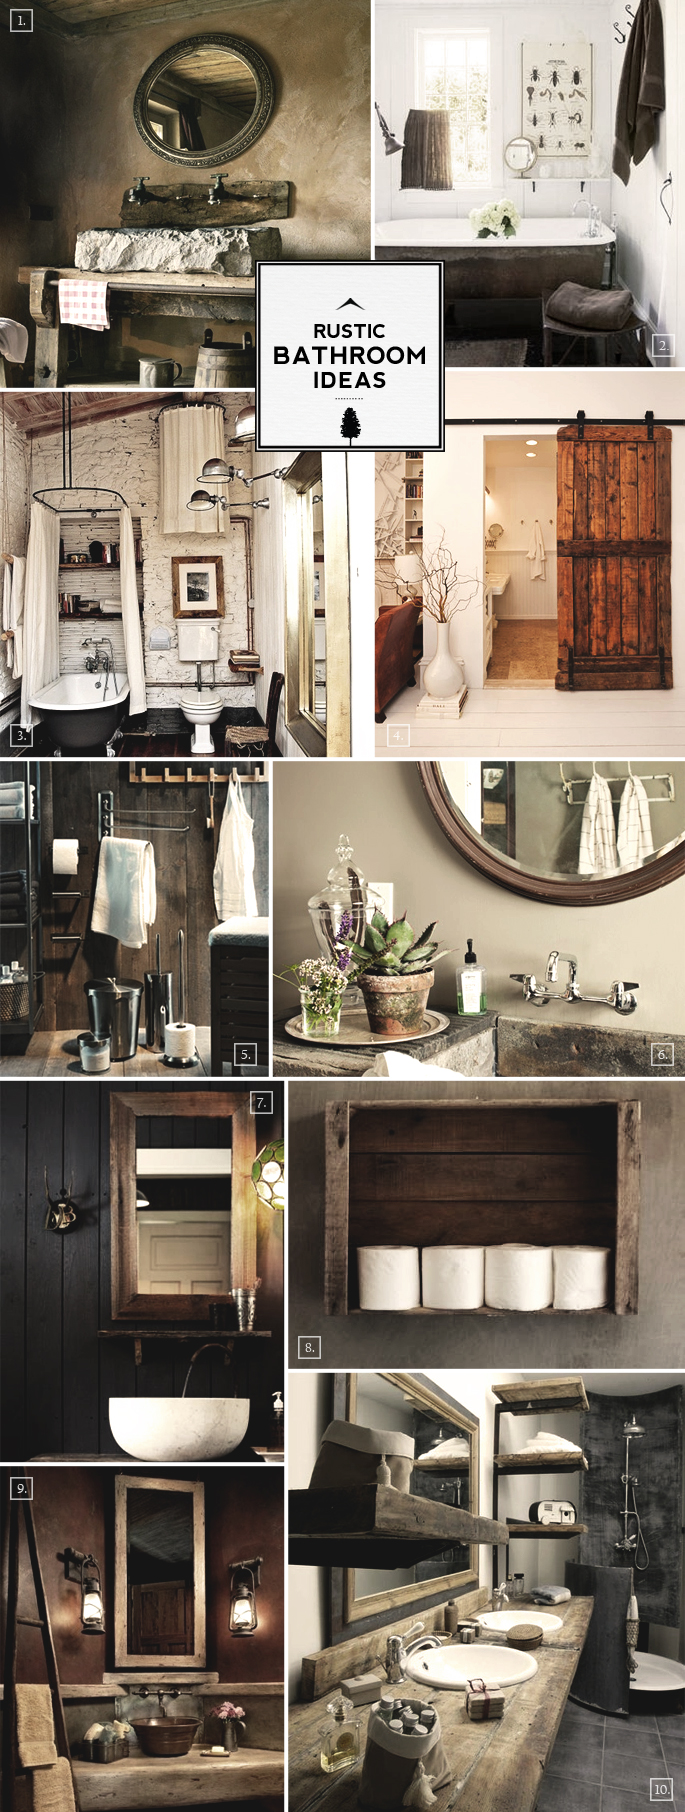 Rustic bathroom ideas and decor tips home tree atlas for Bathroom ideas rustic